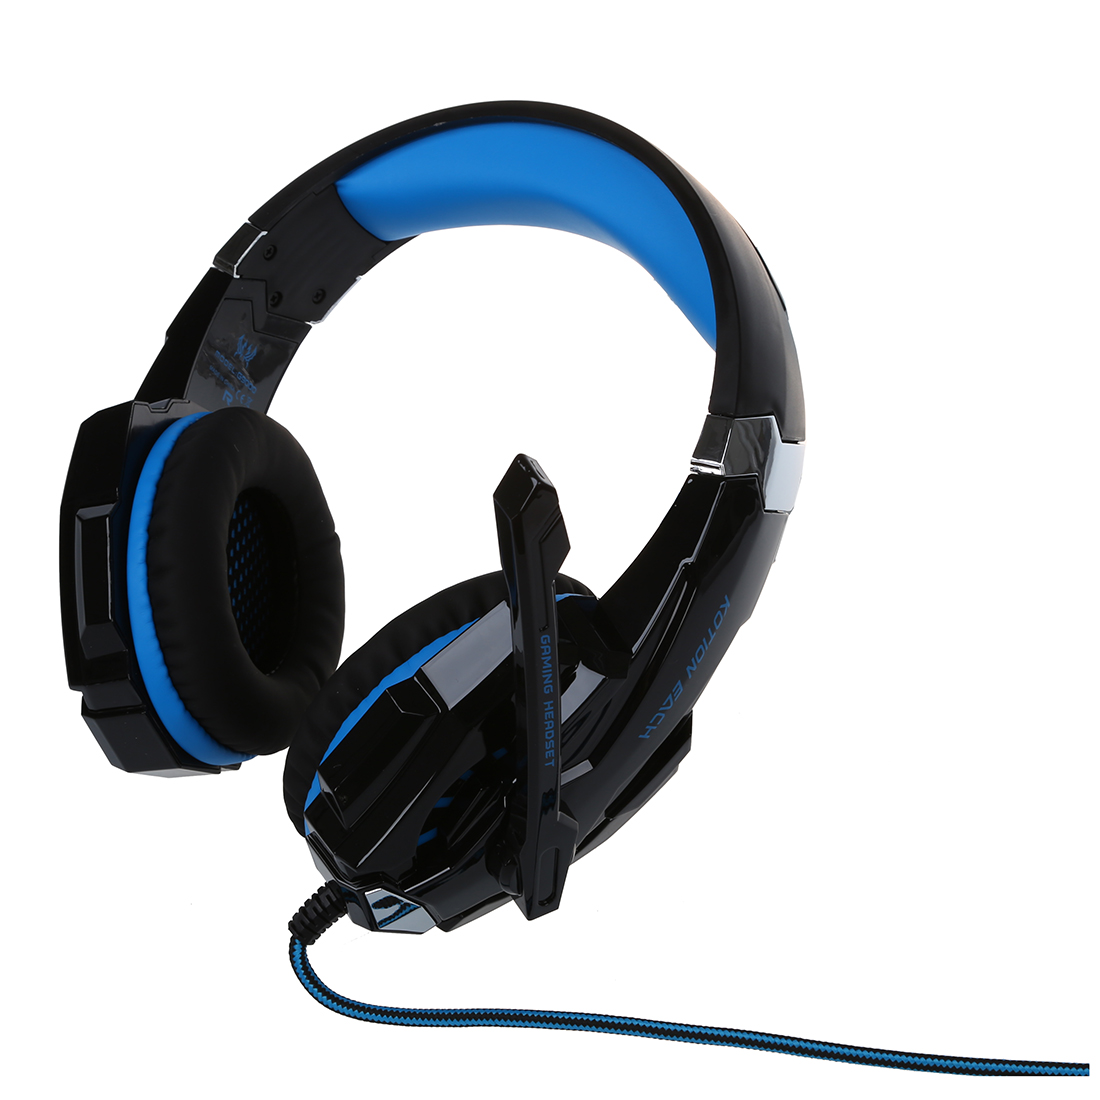 KOTION EACH G9000 Gaming Headset for Play Station 4 Tablet PC iPhone 6 / 6s / 6 Plus / 5s / 5c / 5 Mobilephones, 3.5 mm headphon